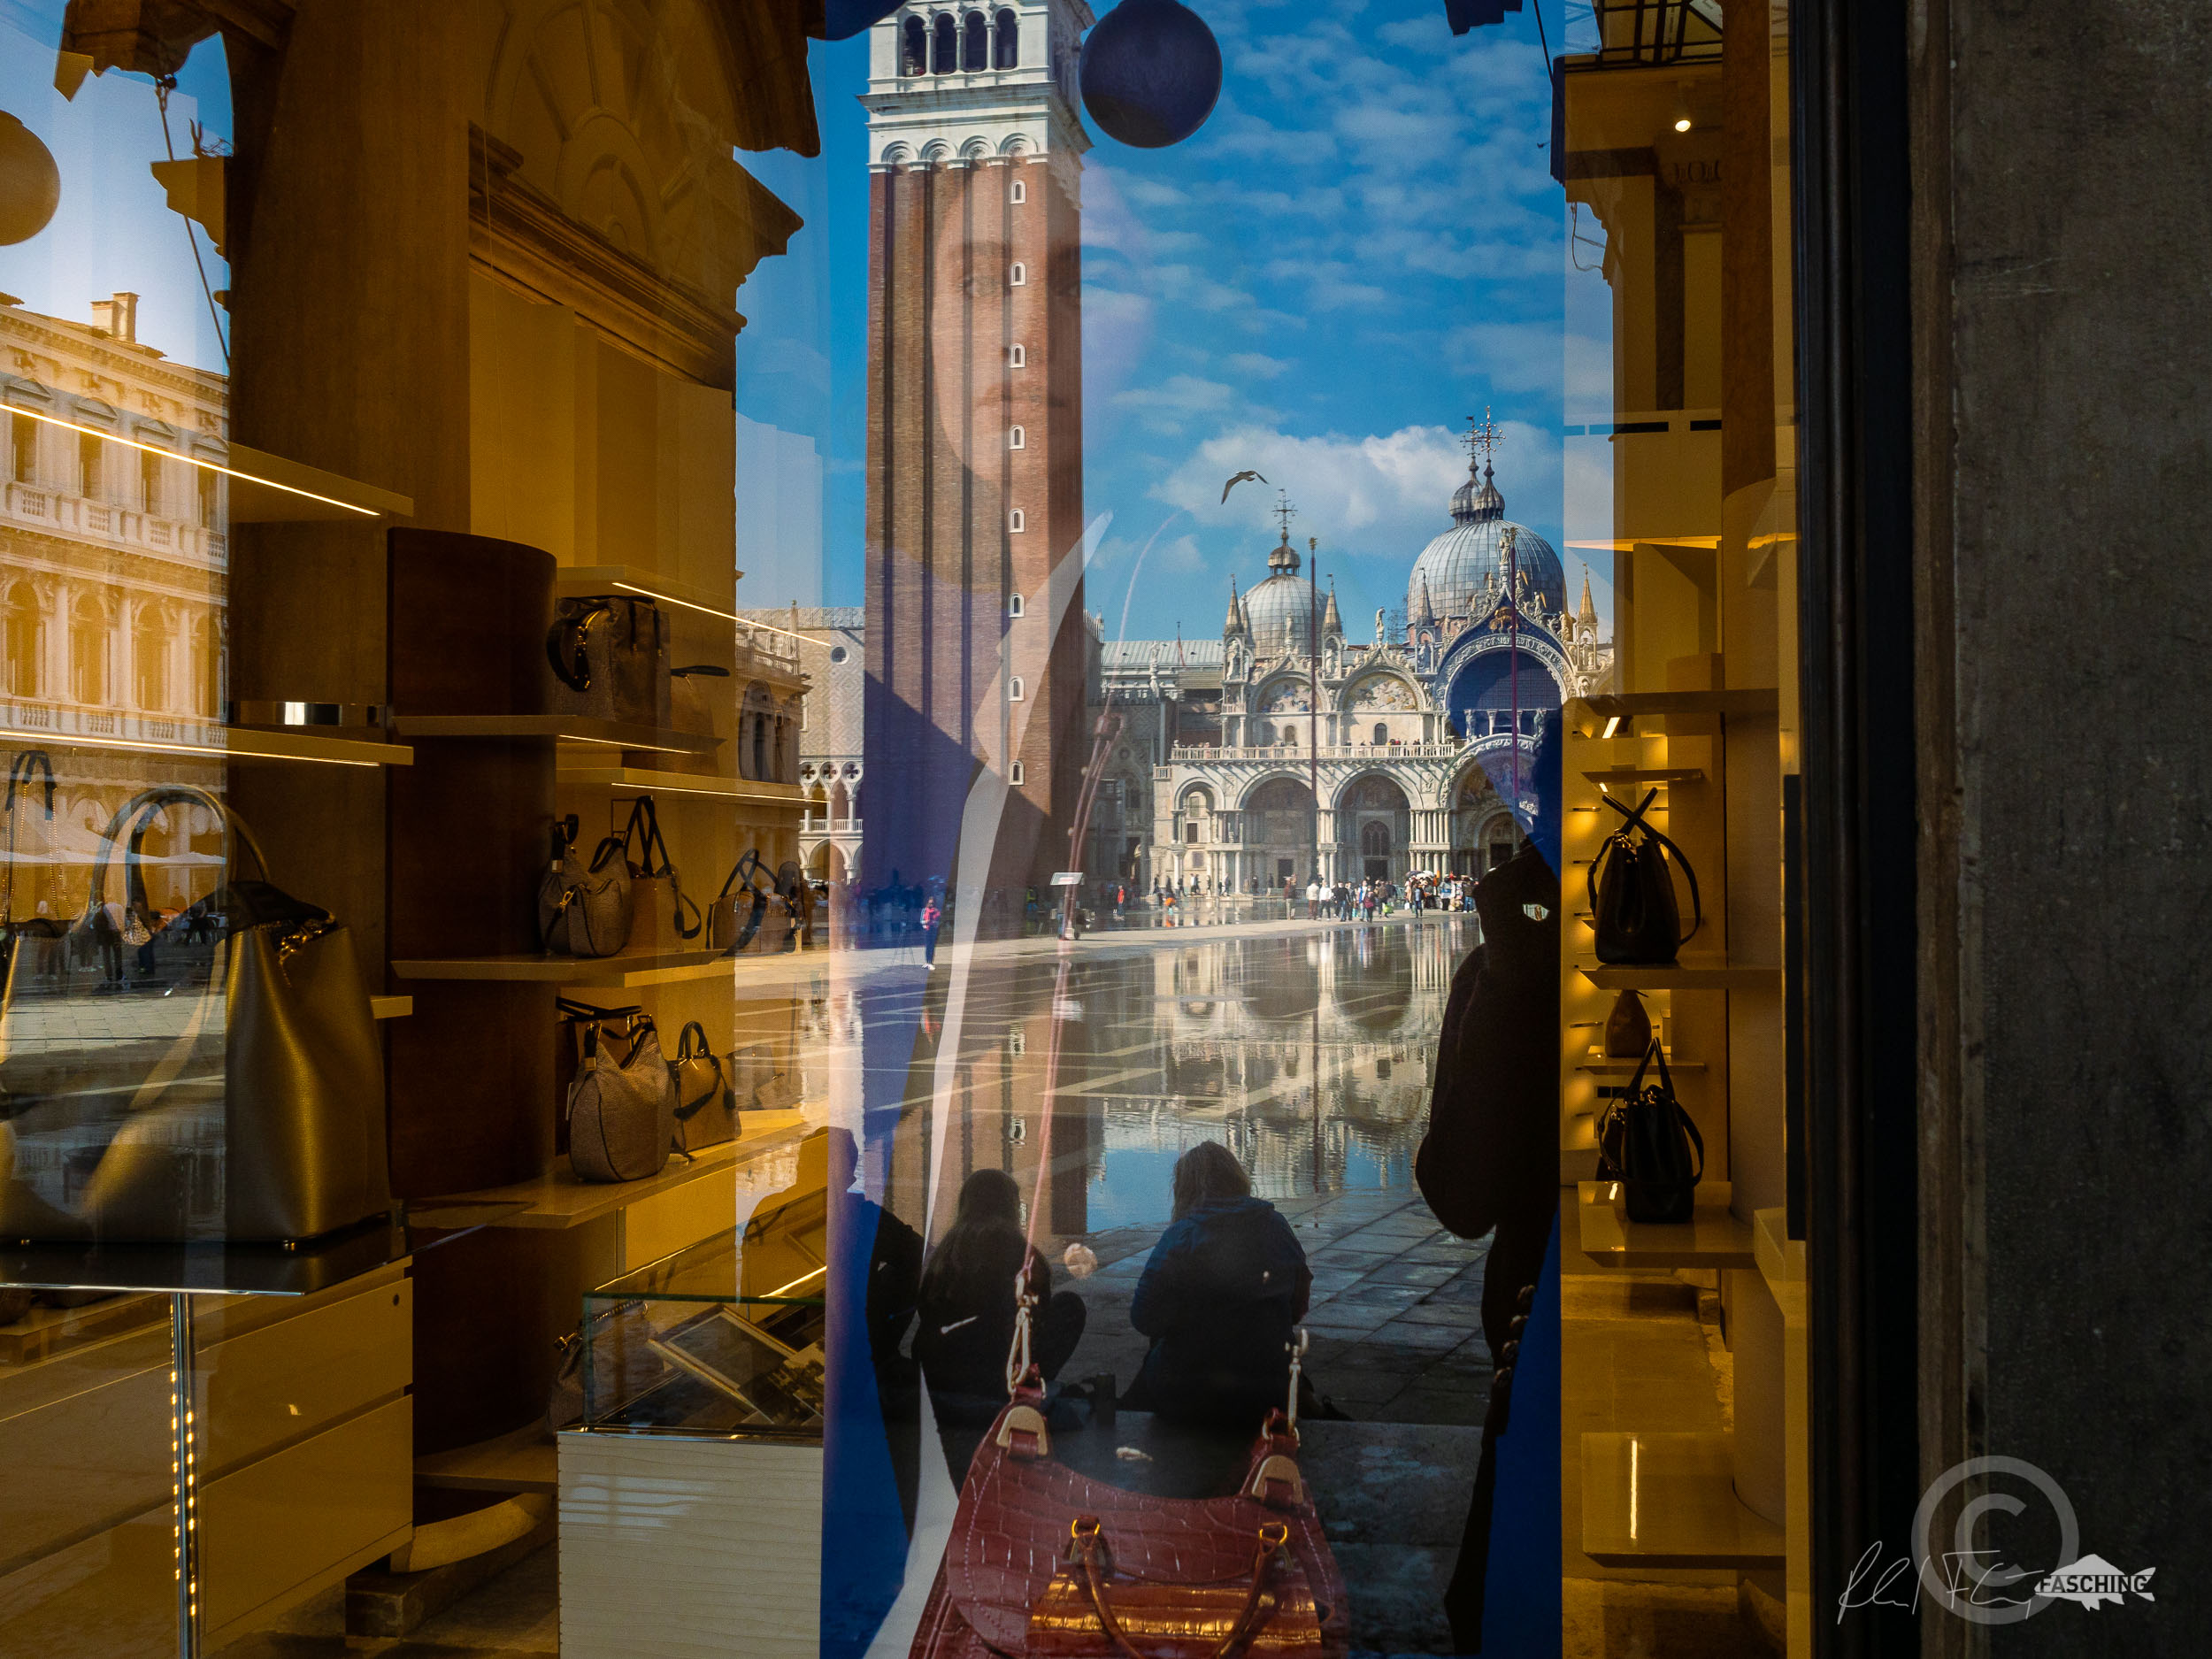 Mirror Girl, Piazza San Marco, Photographer Reinhard Fasching